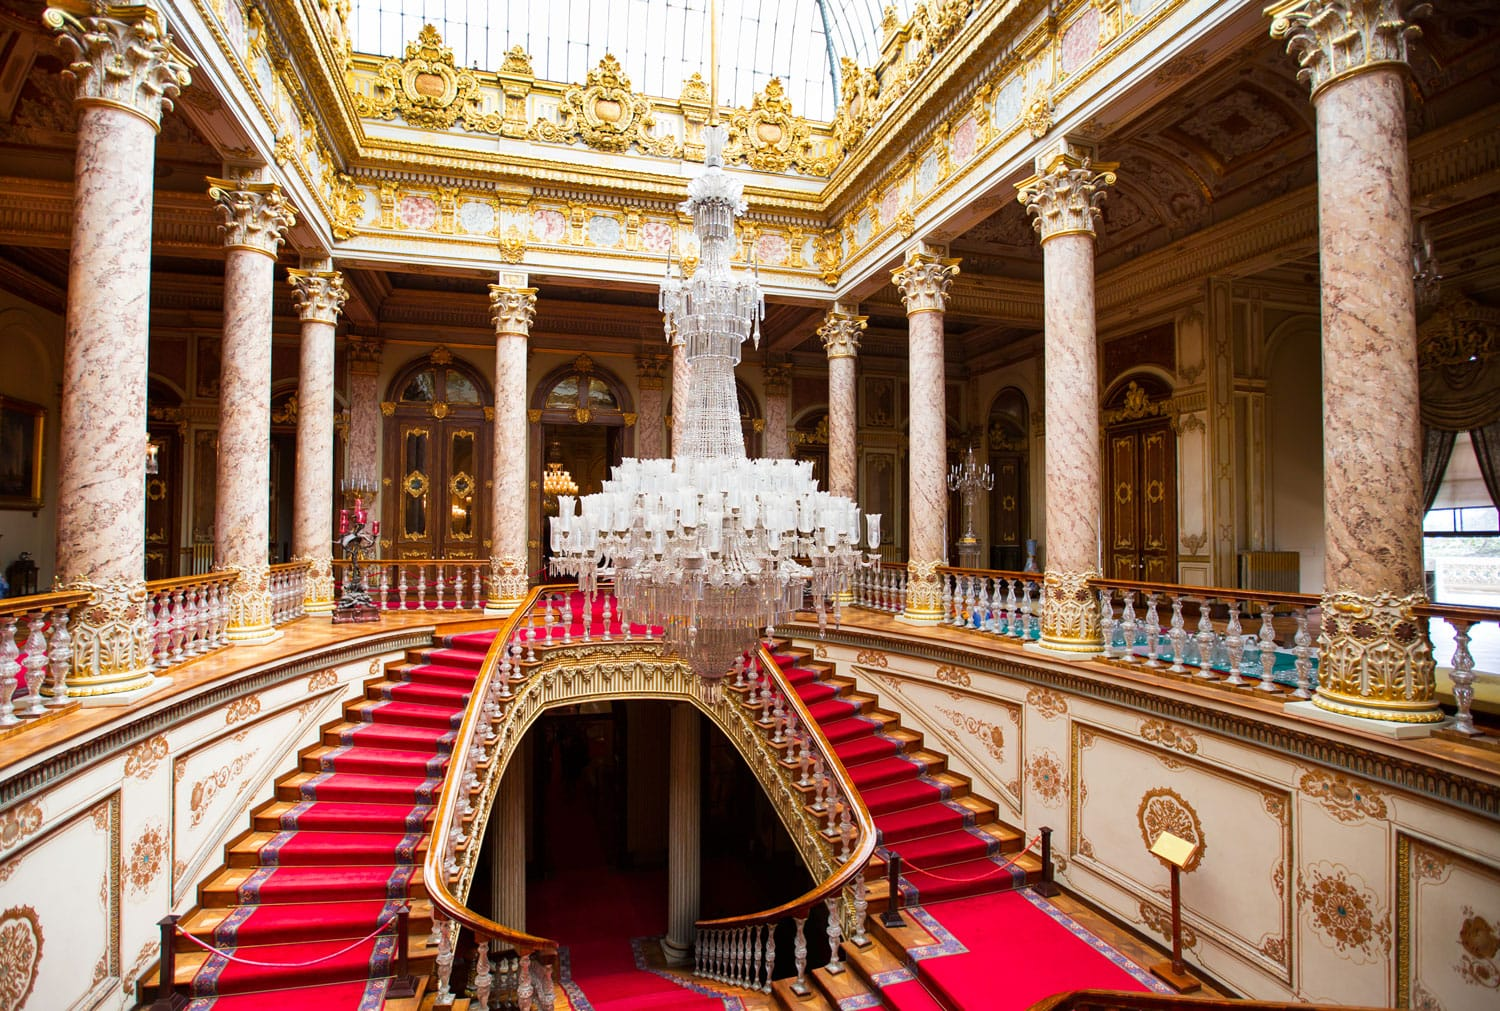 Dolmabahce Palace interior in Istanbul Turkey.